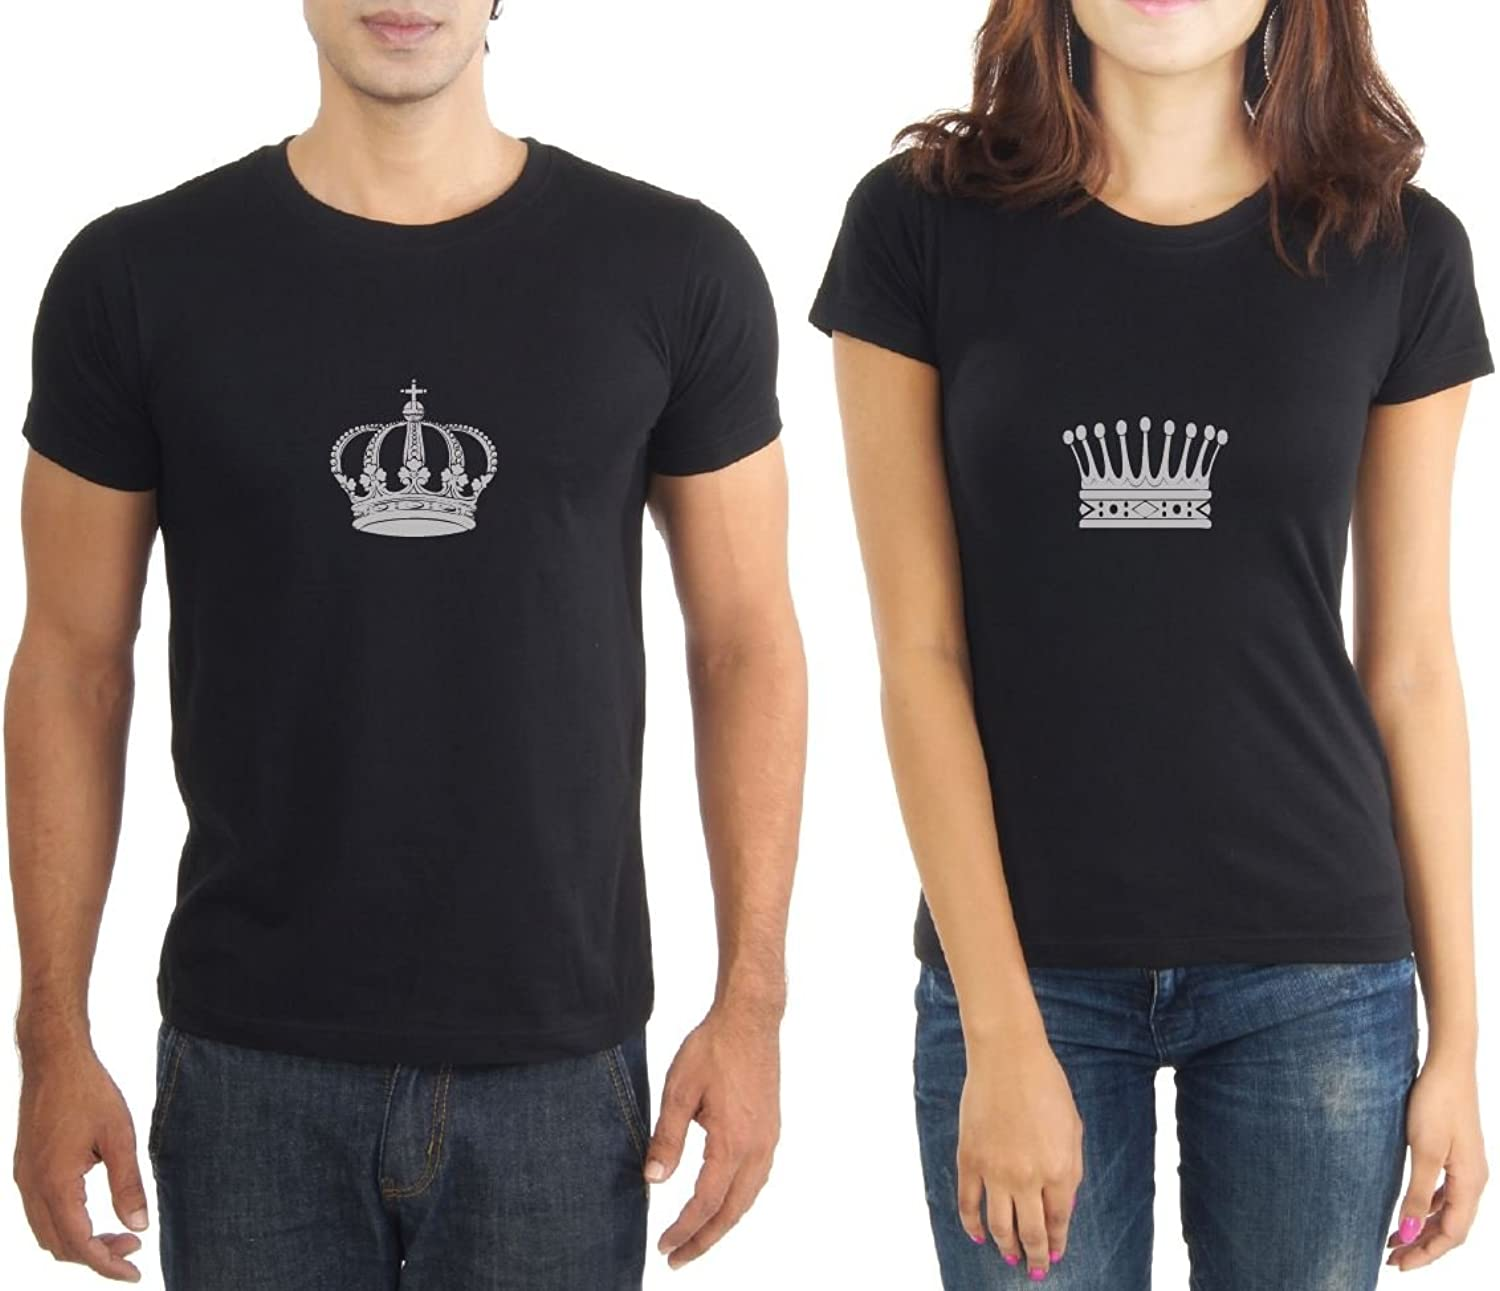 LaCrafters Mens Tshirt - King and Queen Couples Tshirt_Black